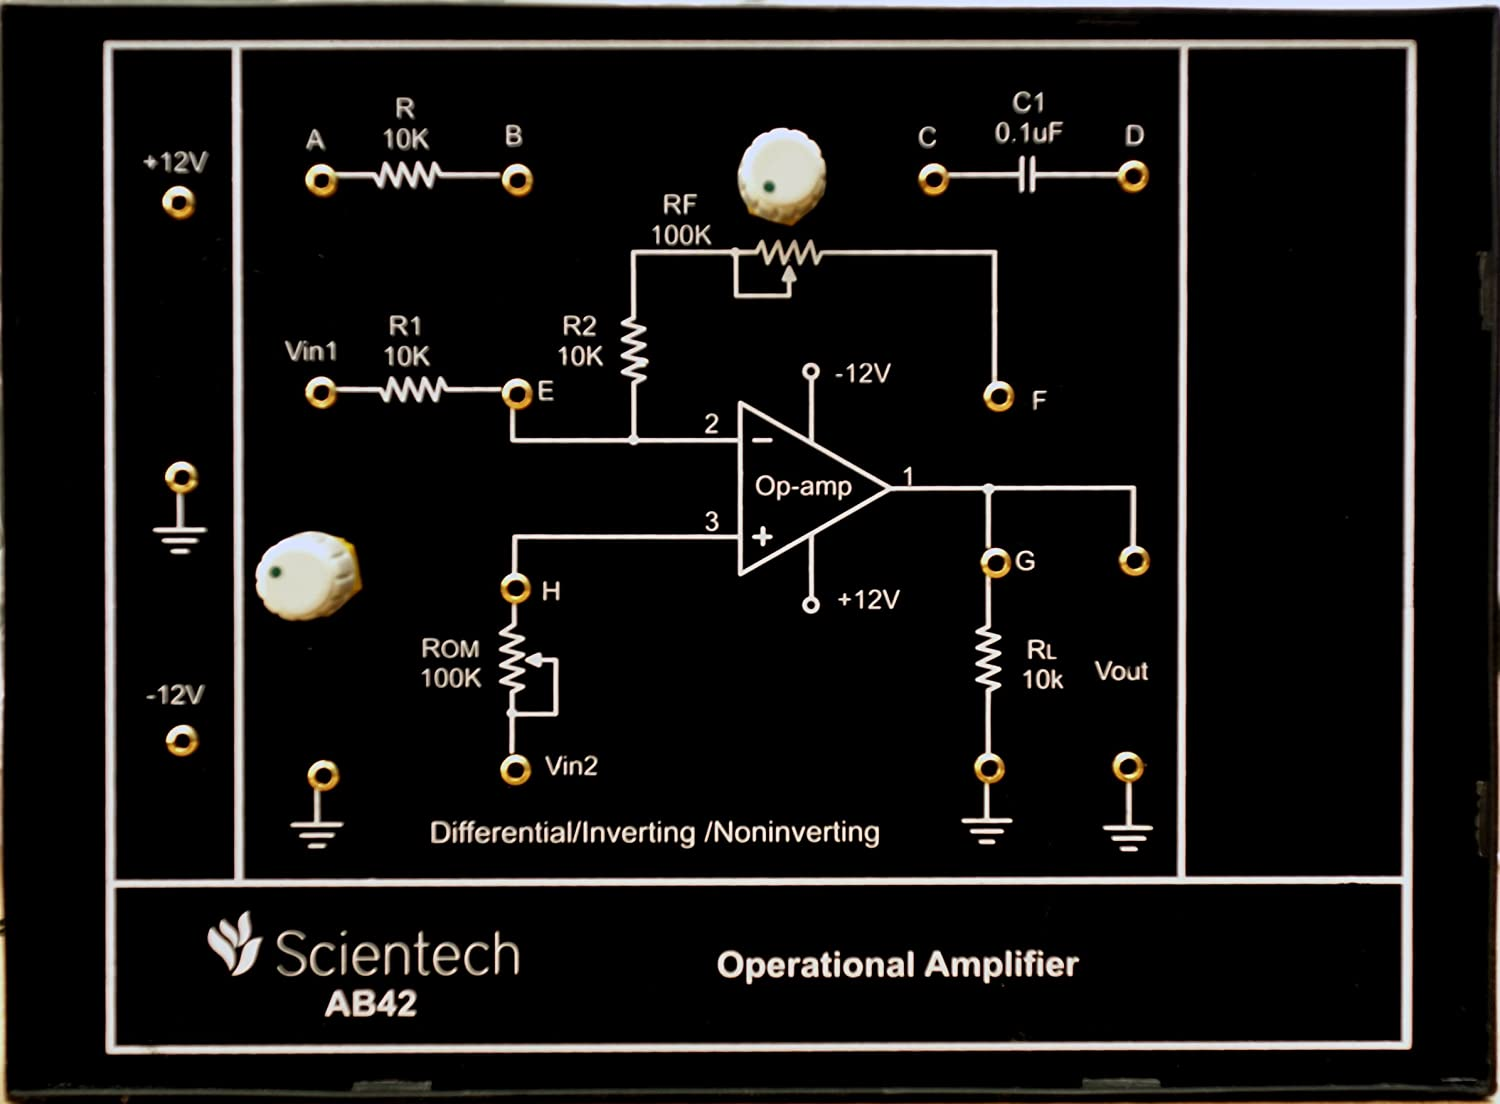 Ab42 Operational Amplifier Inverting Non Block Diagram Differentiator Experiment Board And Trainer Kit With 1 Year Warranty Without Power Supply